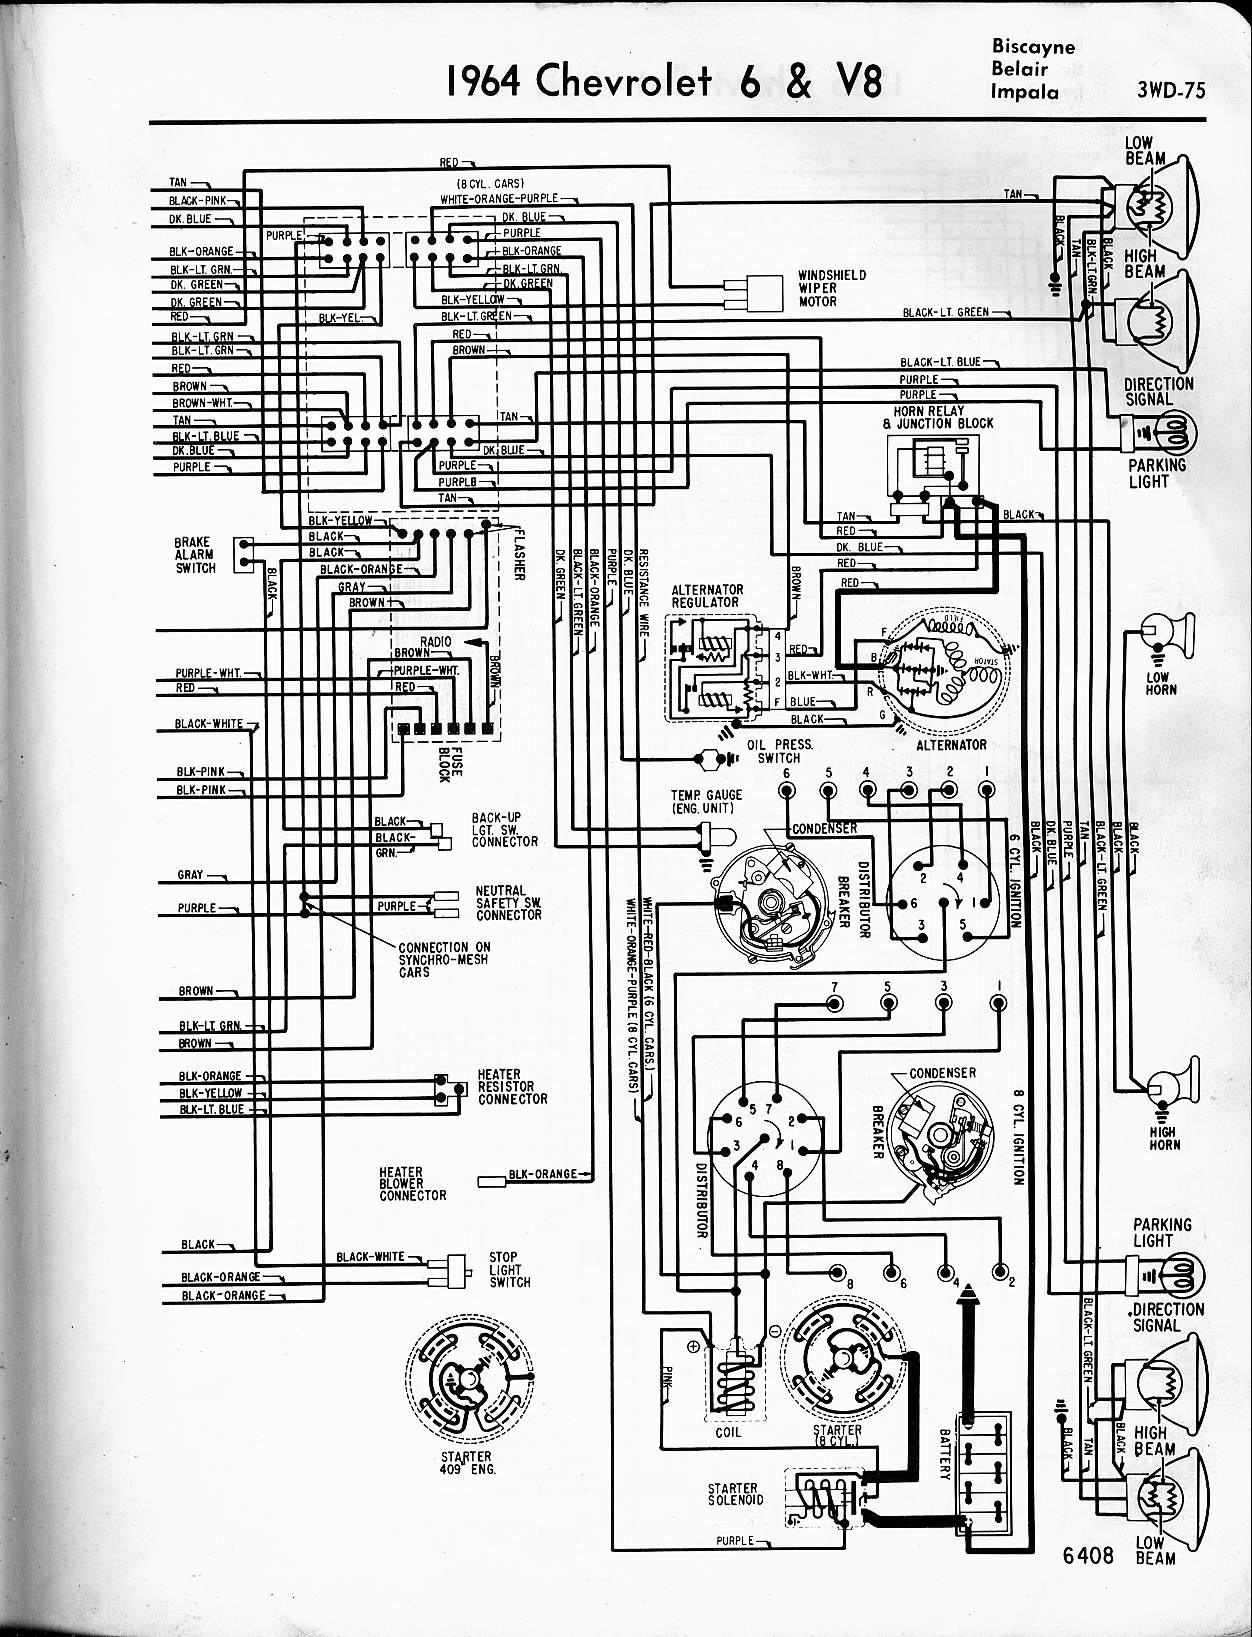 1964 impala wiring diagram online schematic diagram u2022 rh epicstore co